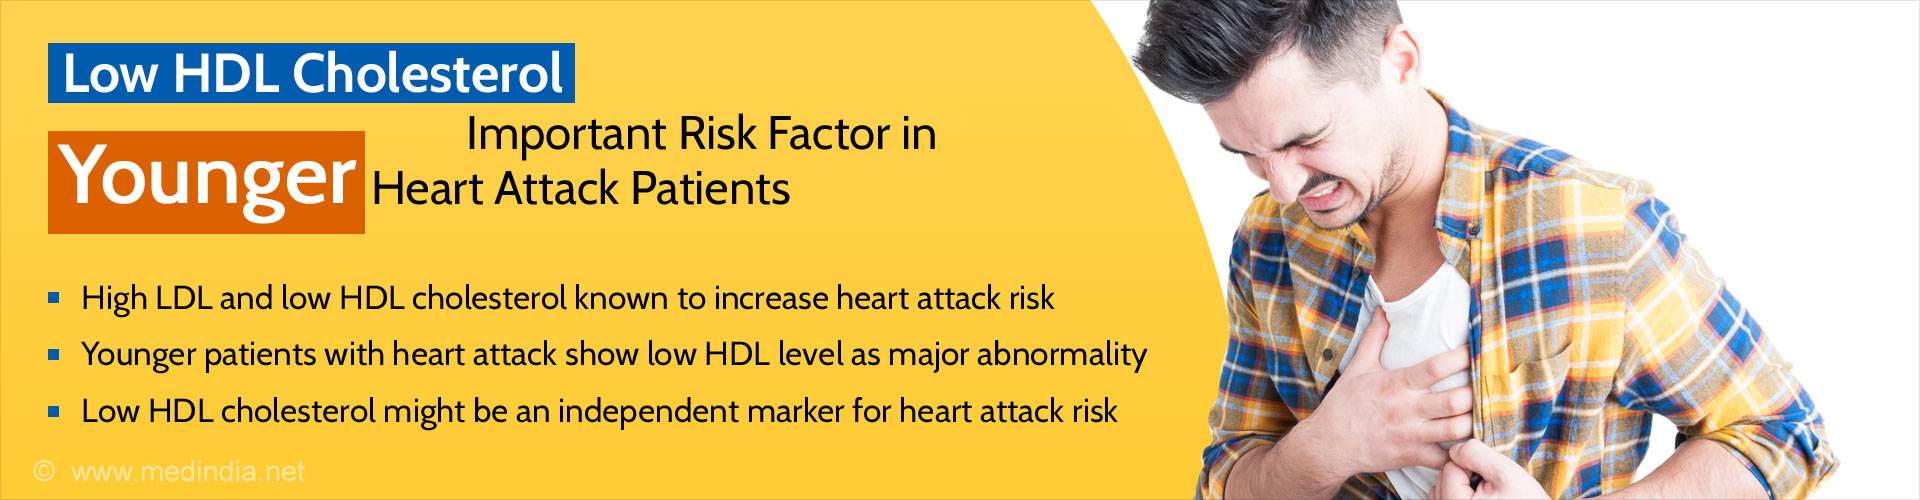 Low HDL Cholesterol Levels Major Risk for Young-Age Heart Attack